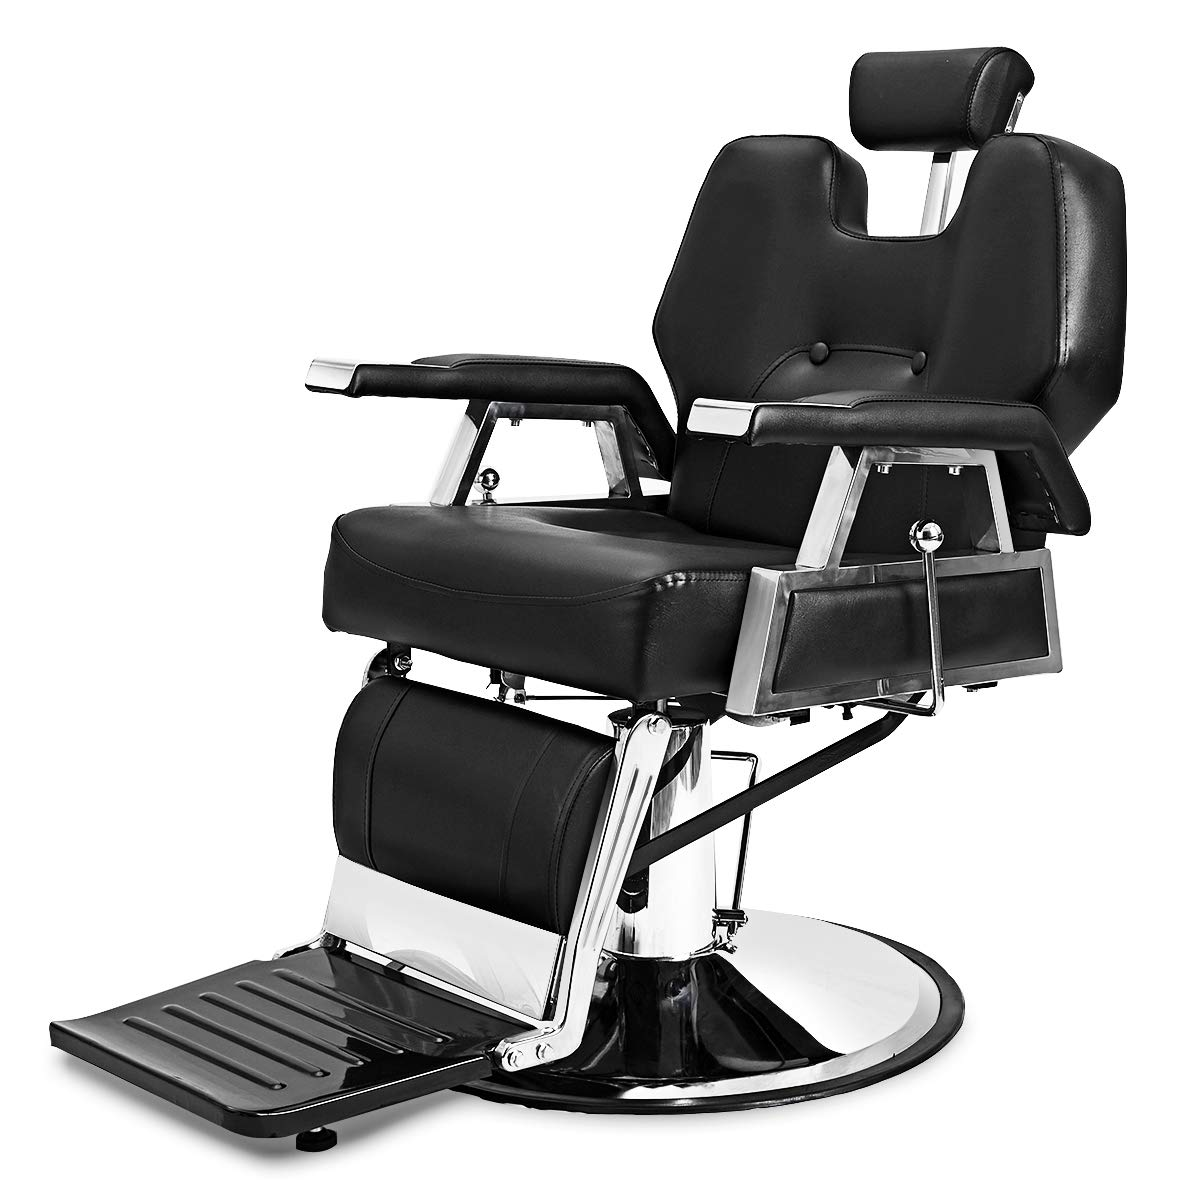 Giantex Hydraulic Recliner Barber Chair for Hair Stylist, All Purpose Salon Spa Recliner Heavy Duty with 360 Swivel Deluxe for Shampoo Facial Massage, Reclining Tattoo Salon Chairs